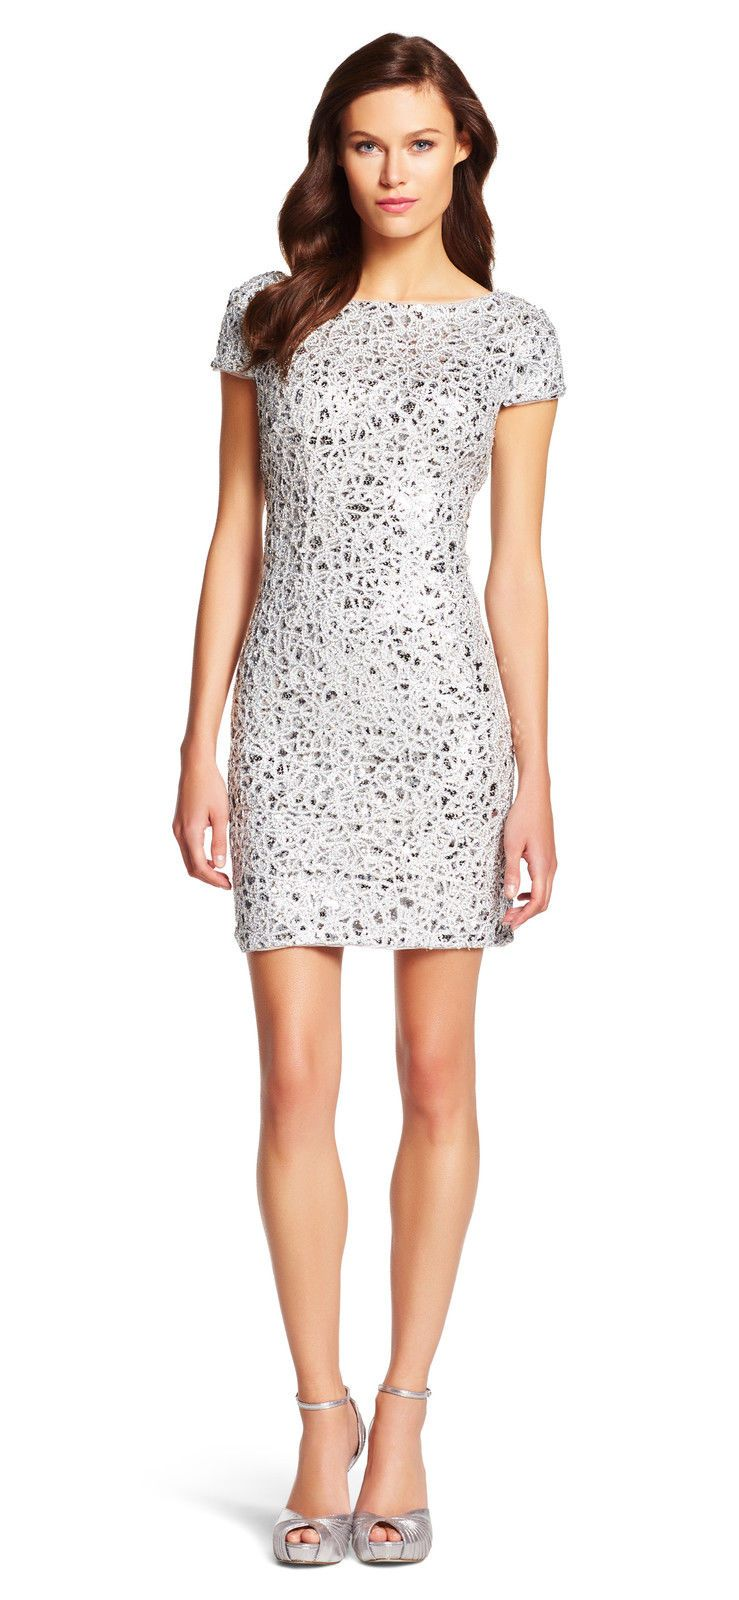 Adrianna Papell Short Sleeve Sequin Cocktail Dress Silver Final Sale Sequin Cocktail Dress Gray Cocktail Dress Cocktail Dress Classy